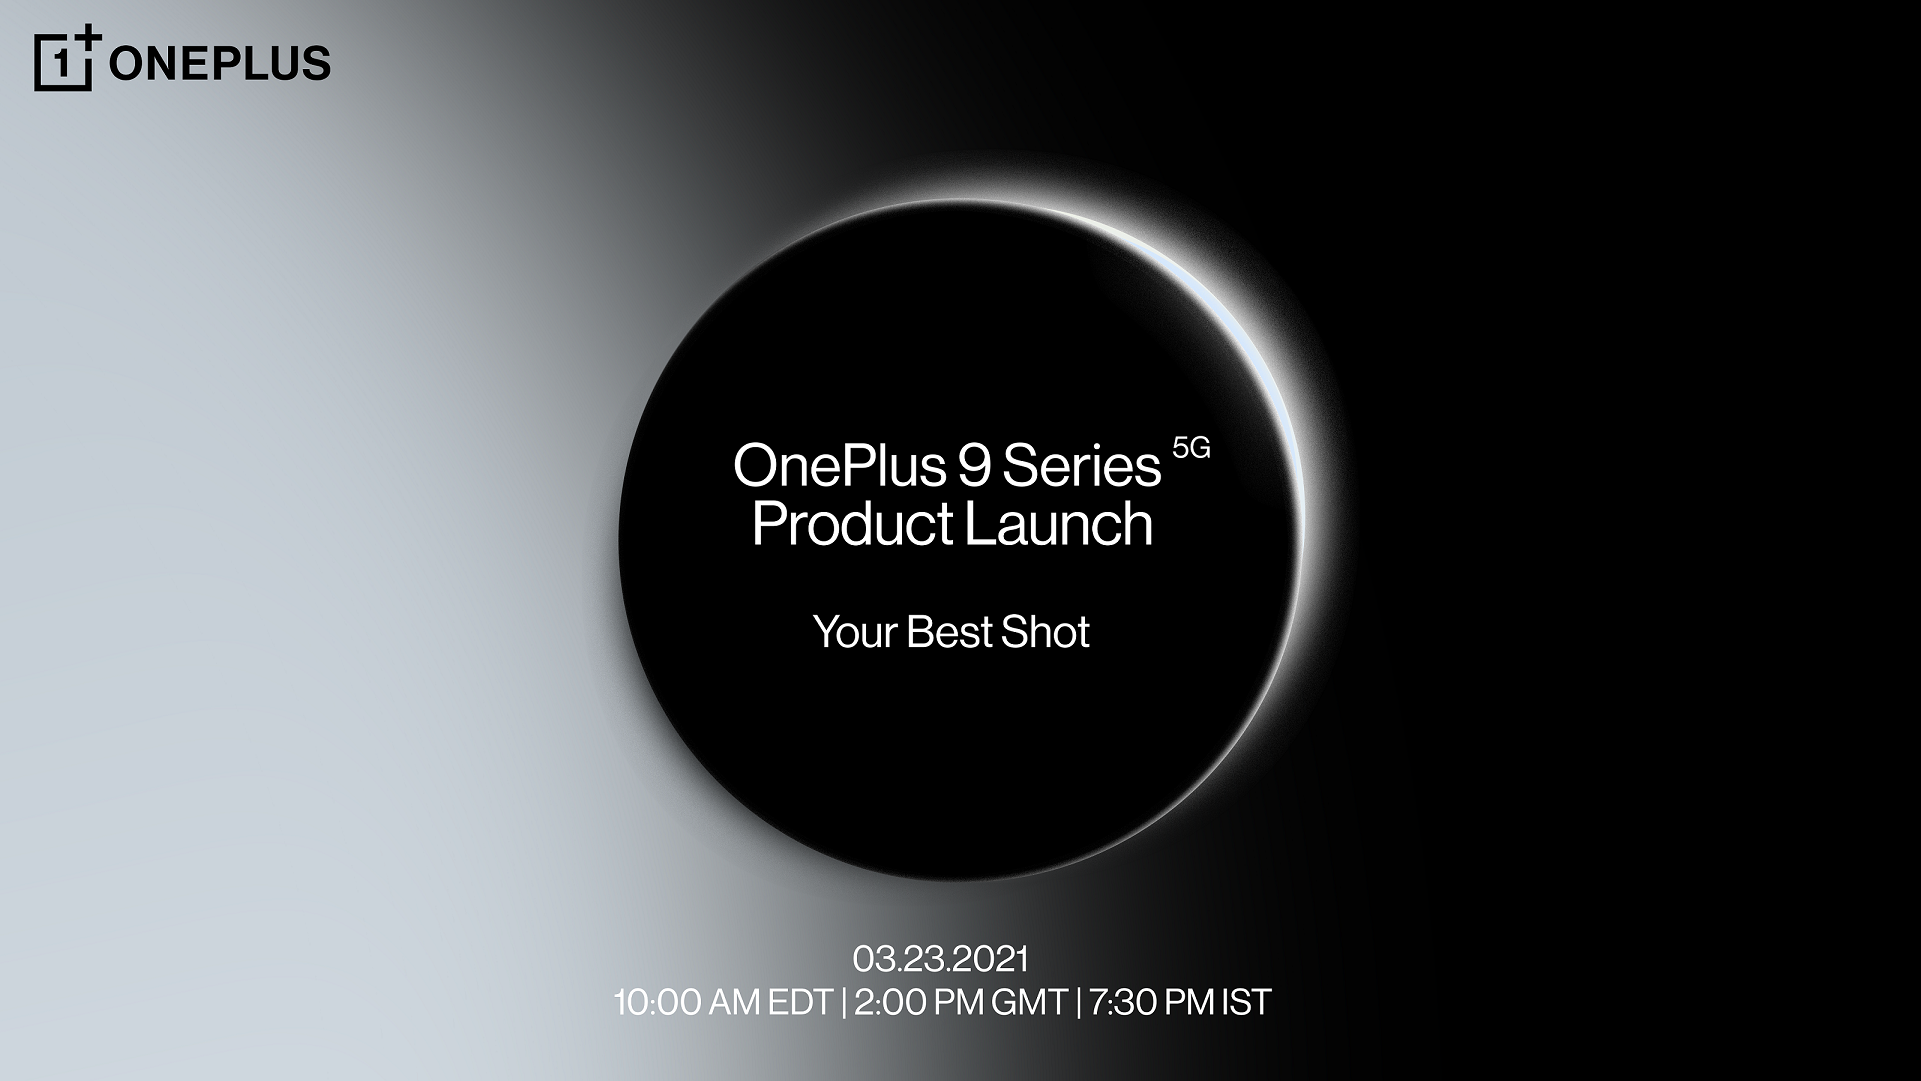 OnePlus 9 Series Product Launch